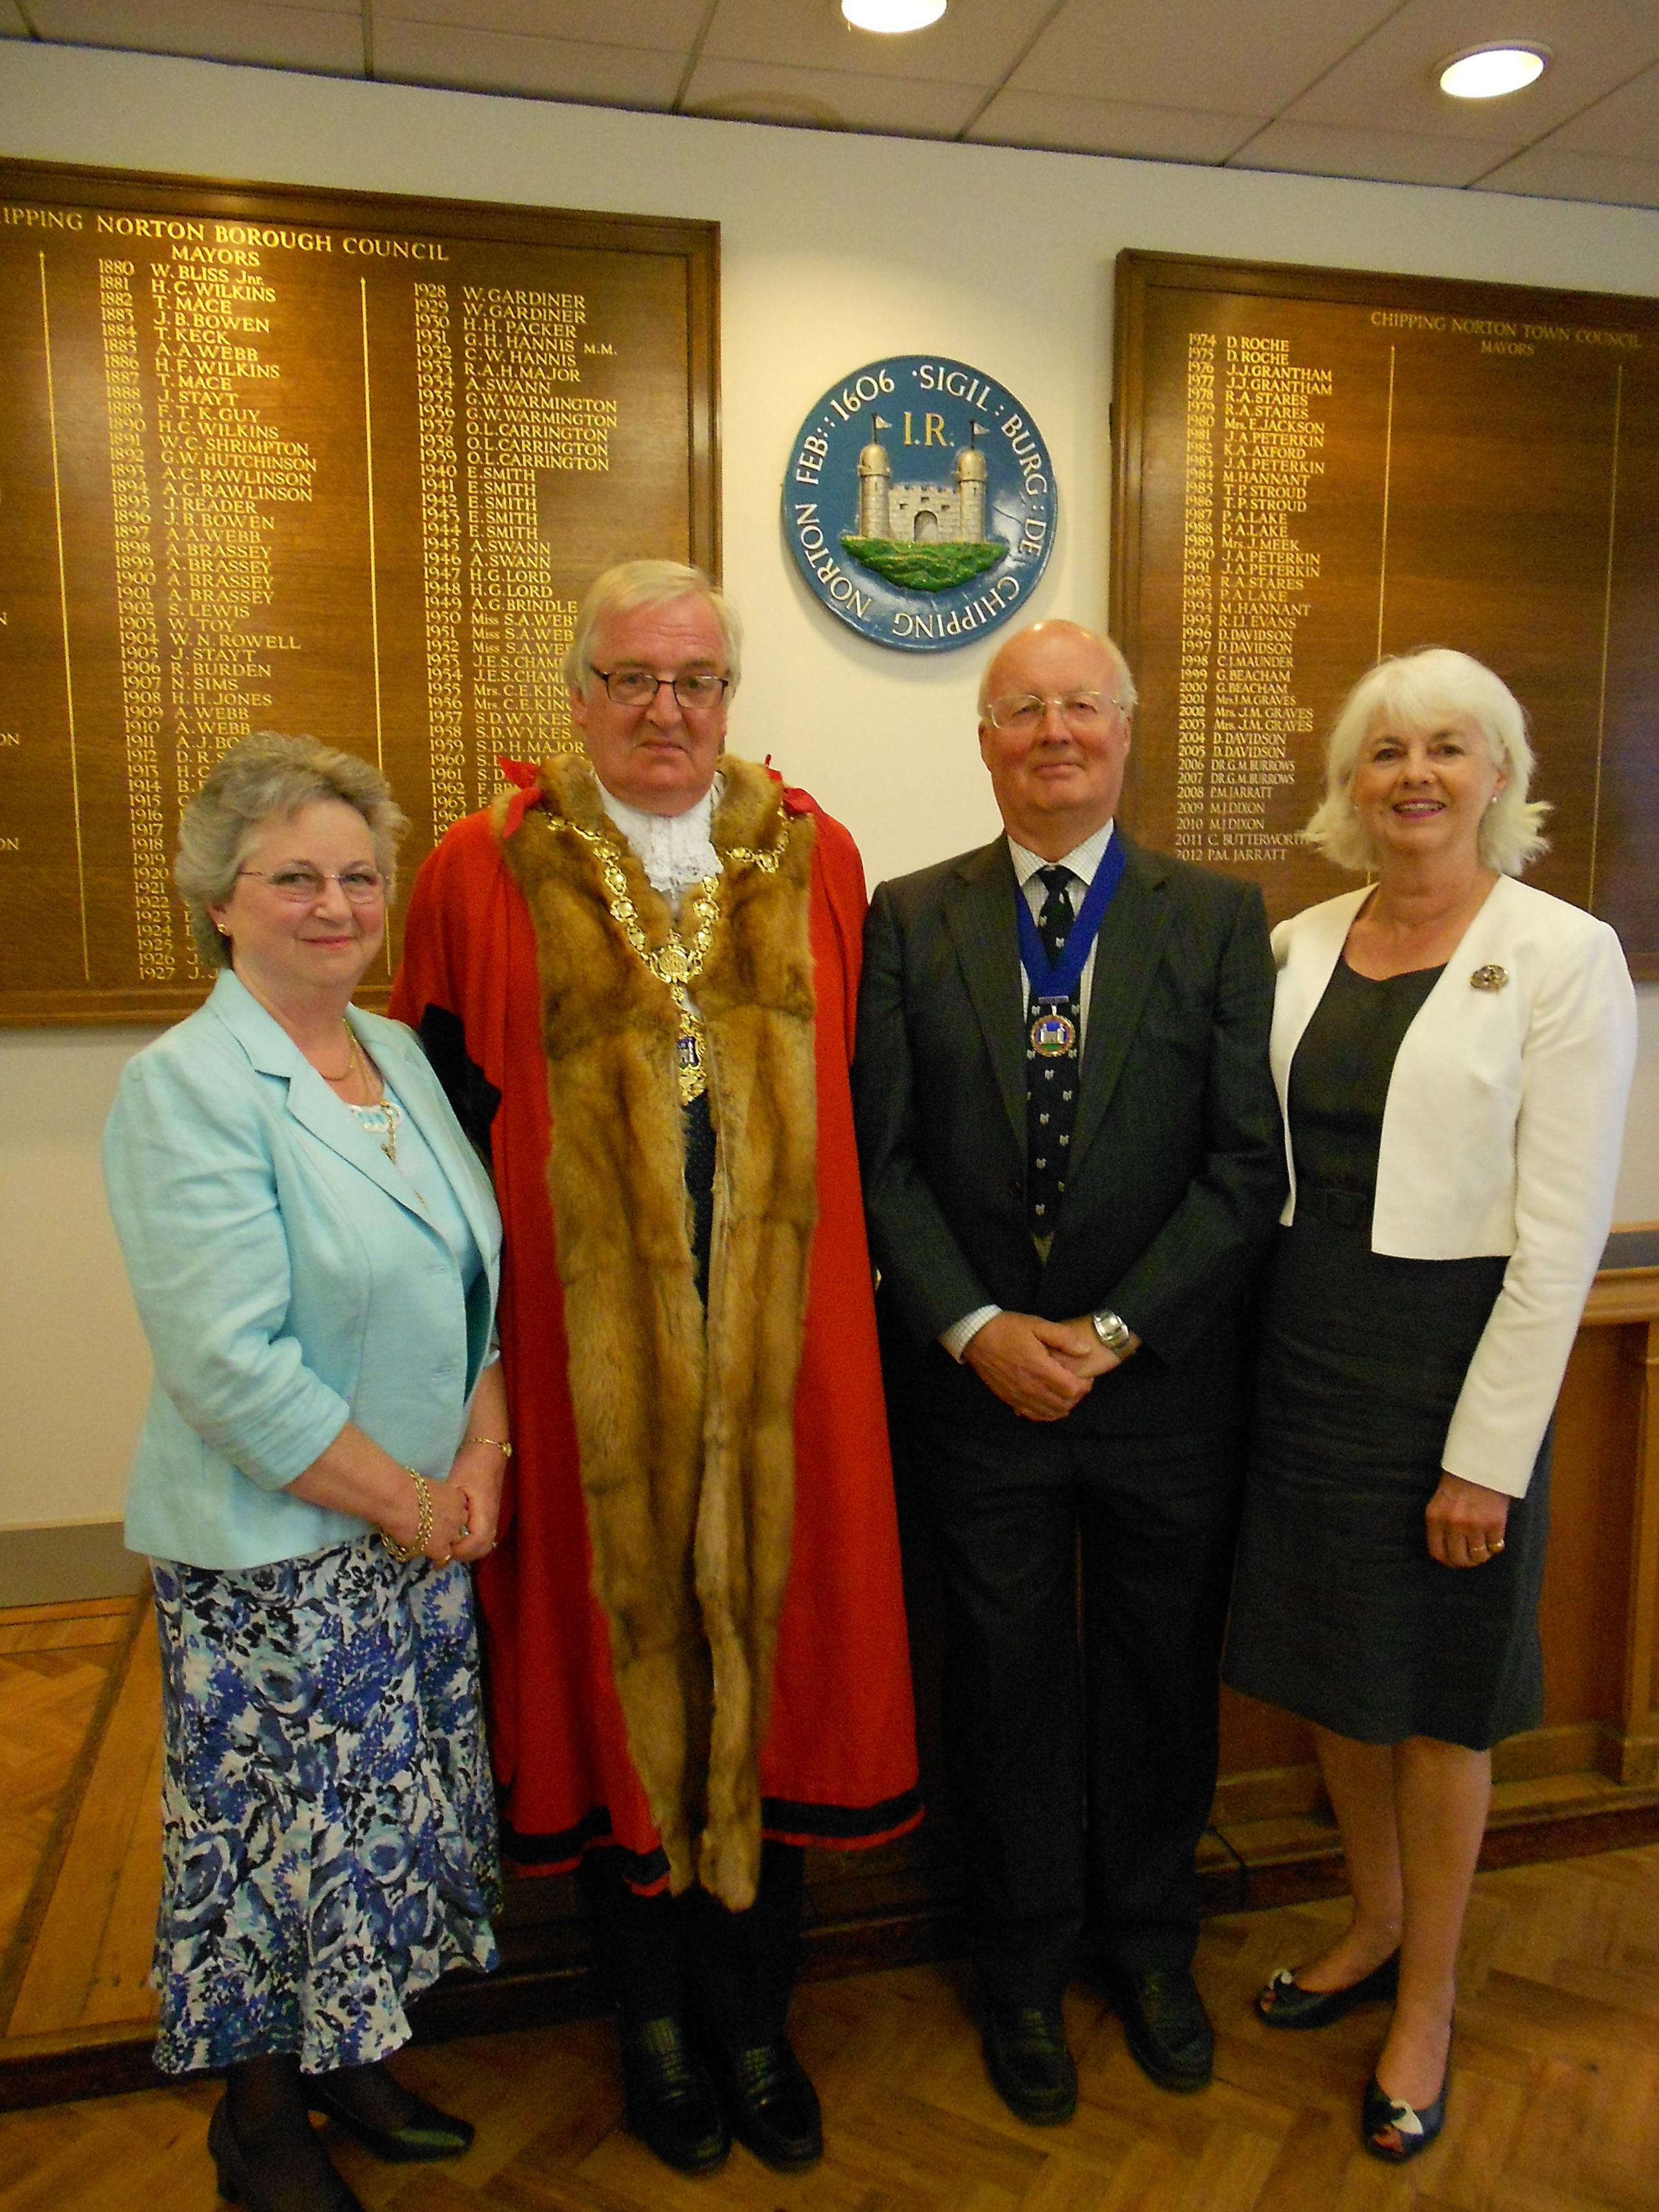 Chipping Norton Mayor continues for second term